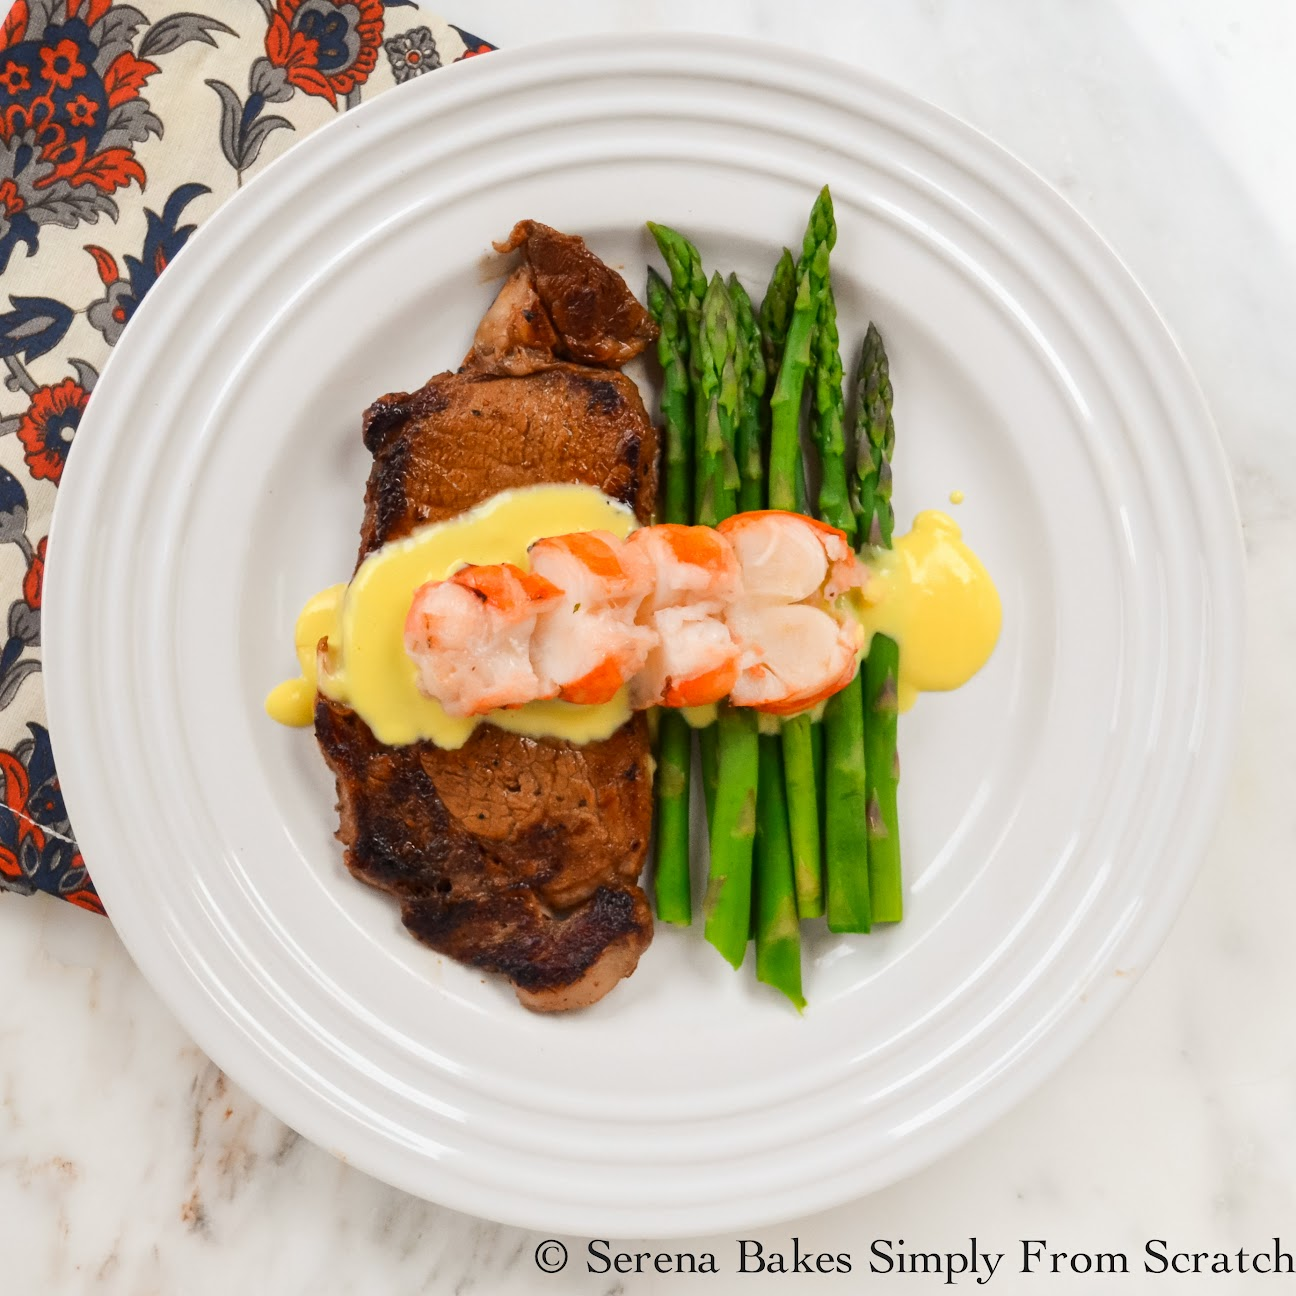 Perfectly Pan Seared Steak With Hollandaise Sauce And Lobster Tail